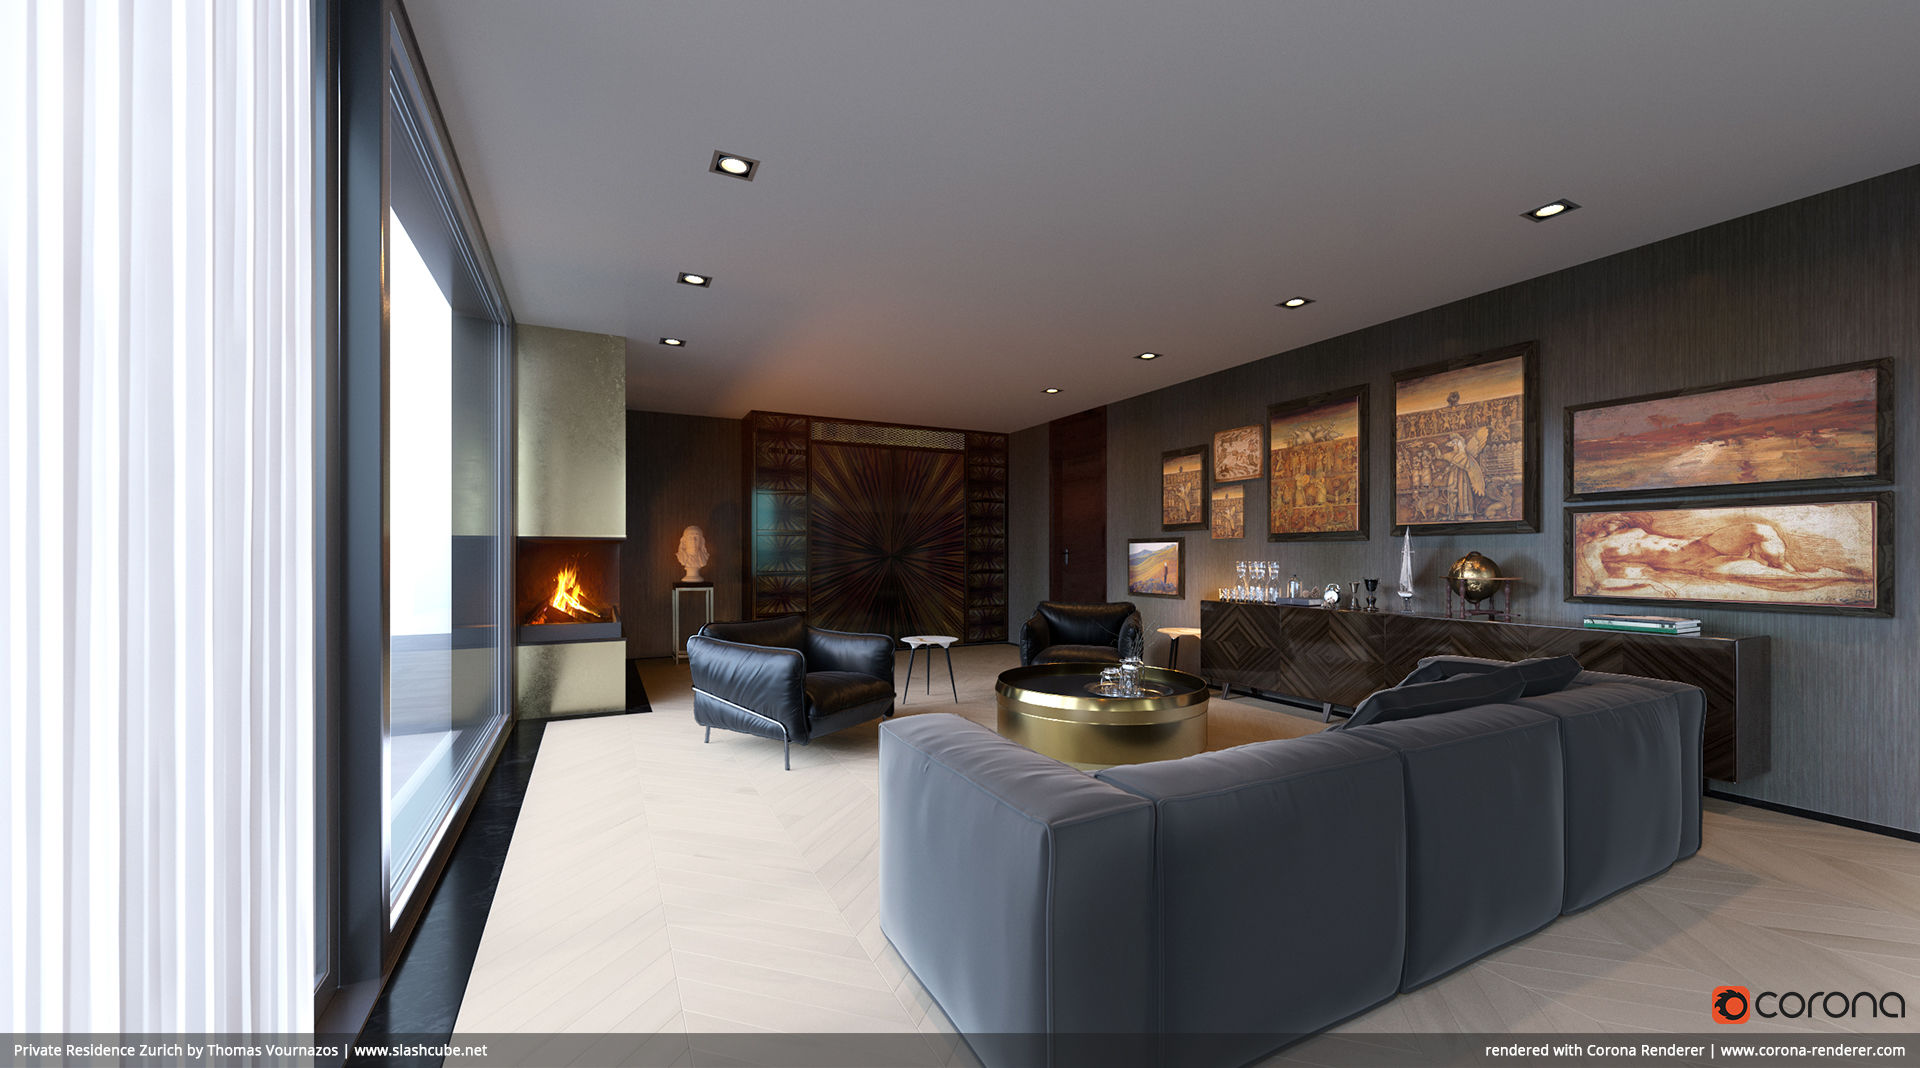 Private Residence Zurich 02 by Thomas Vournazos